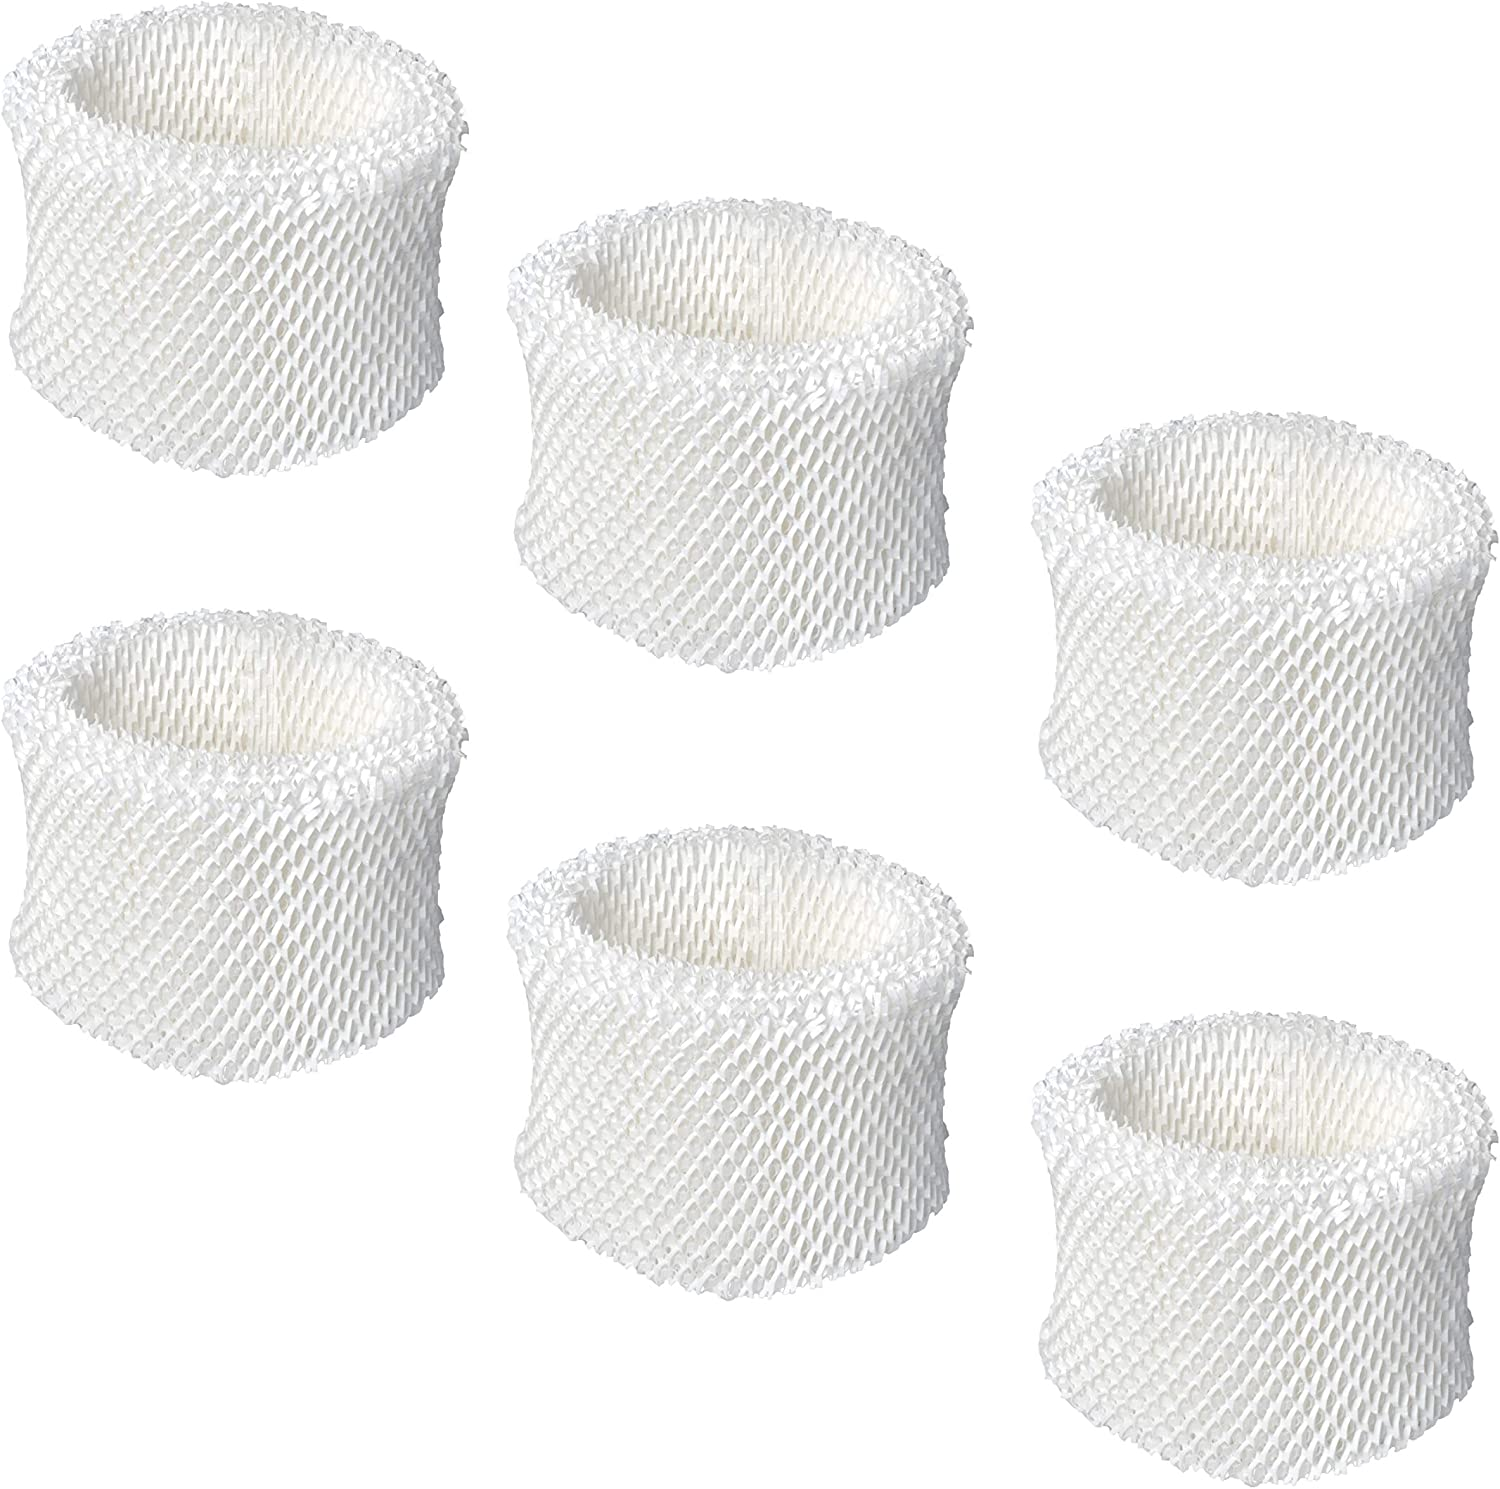 Replacement Humidifier Wicking Filter Compatible with Honeywell HC-888, HC-888N, Filter C - Fits for Honeywell HCM-890 HCM-890B HEV-320 Duracraft DCM-200 DH-890 - Pack of 6